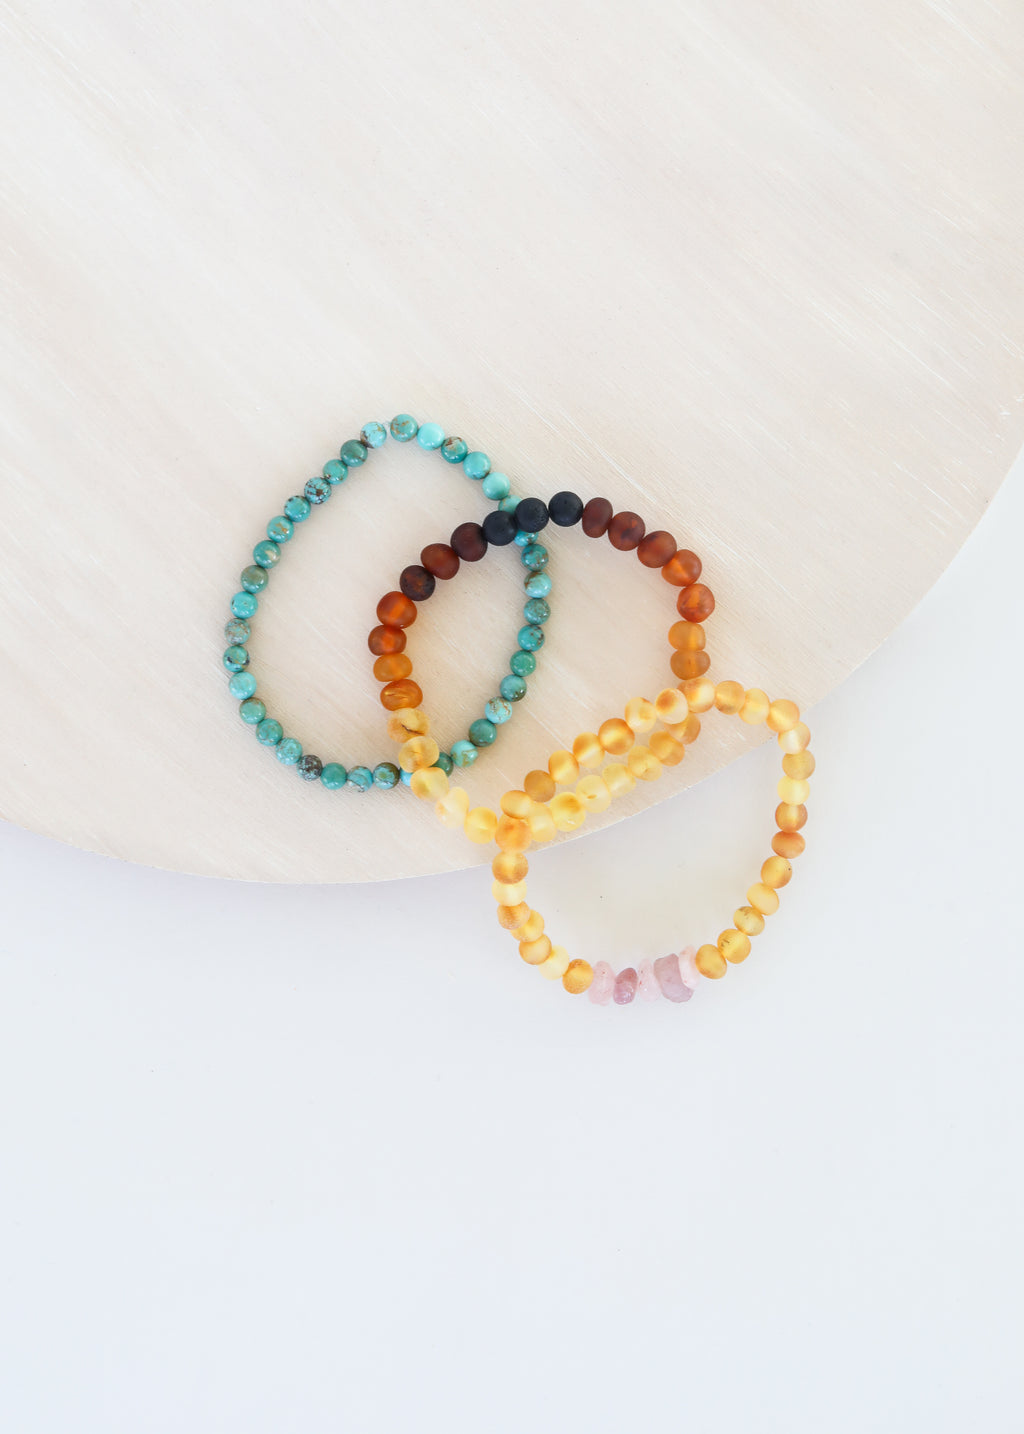 Natural Turquoise + Ombre + Raw Amber with Rose Quartz || Adult Bracelet Set